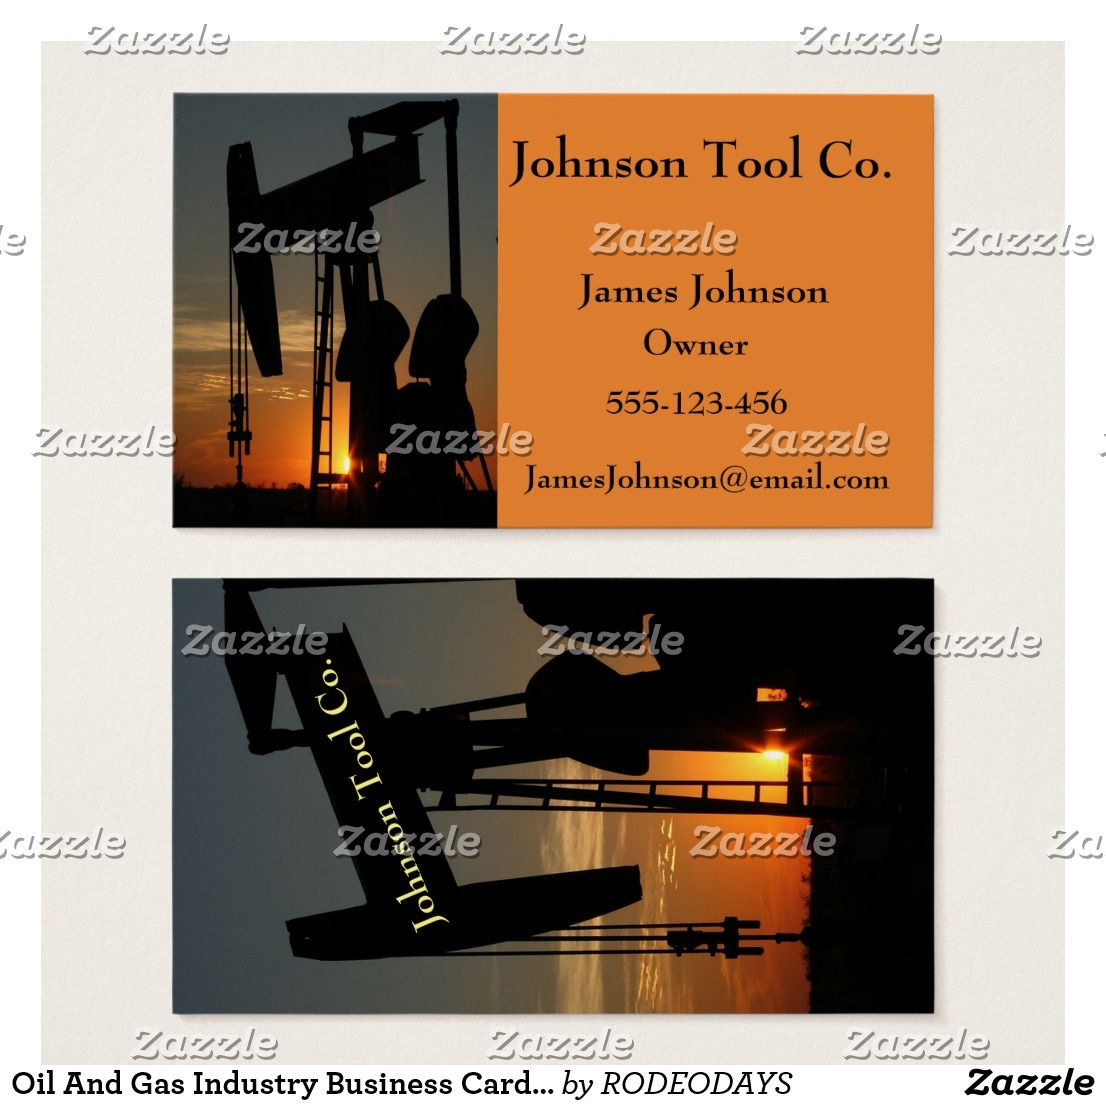 Oil And Gas Industry Business Cards 2 Side | Pinterest